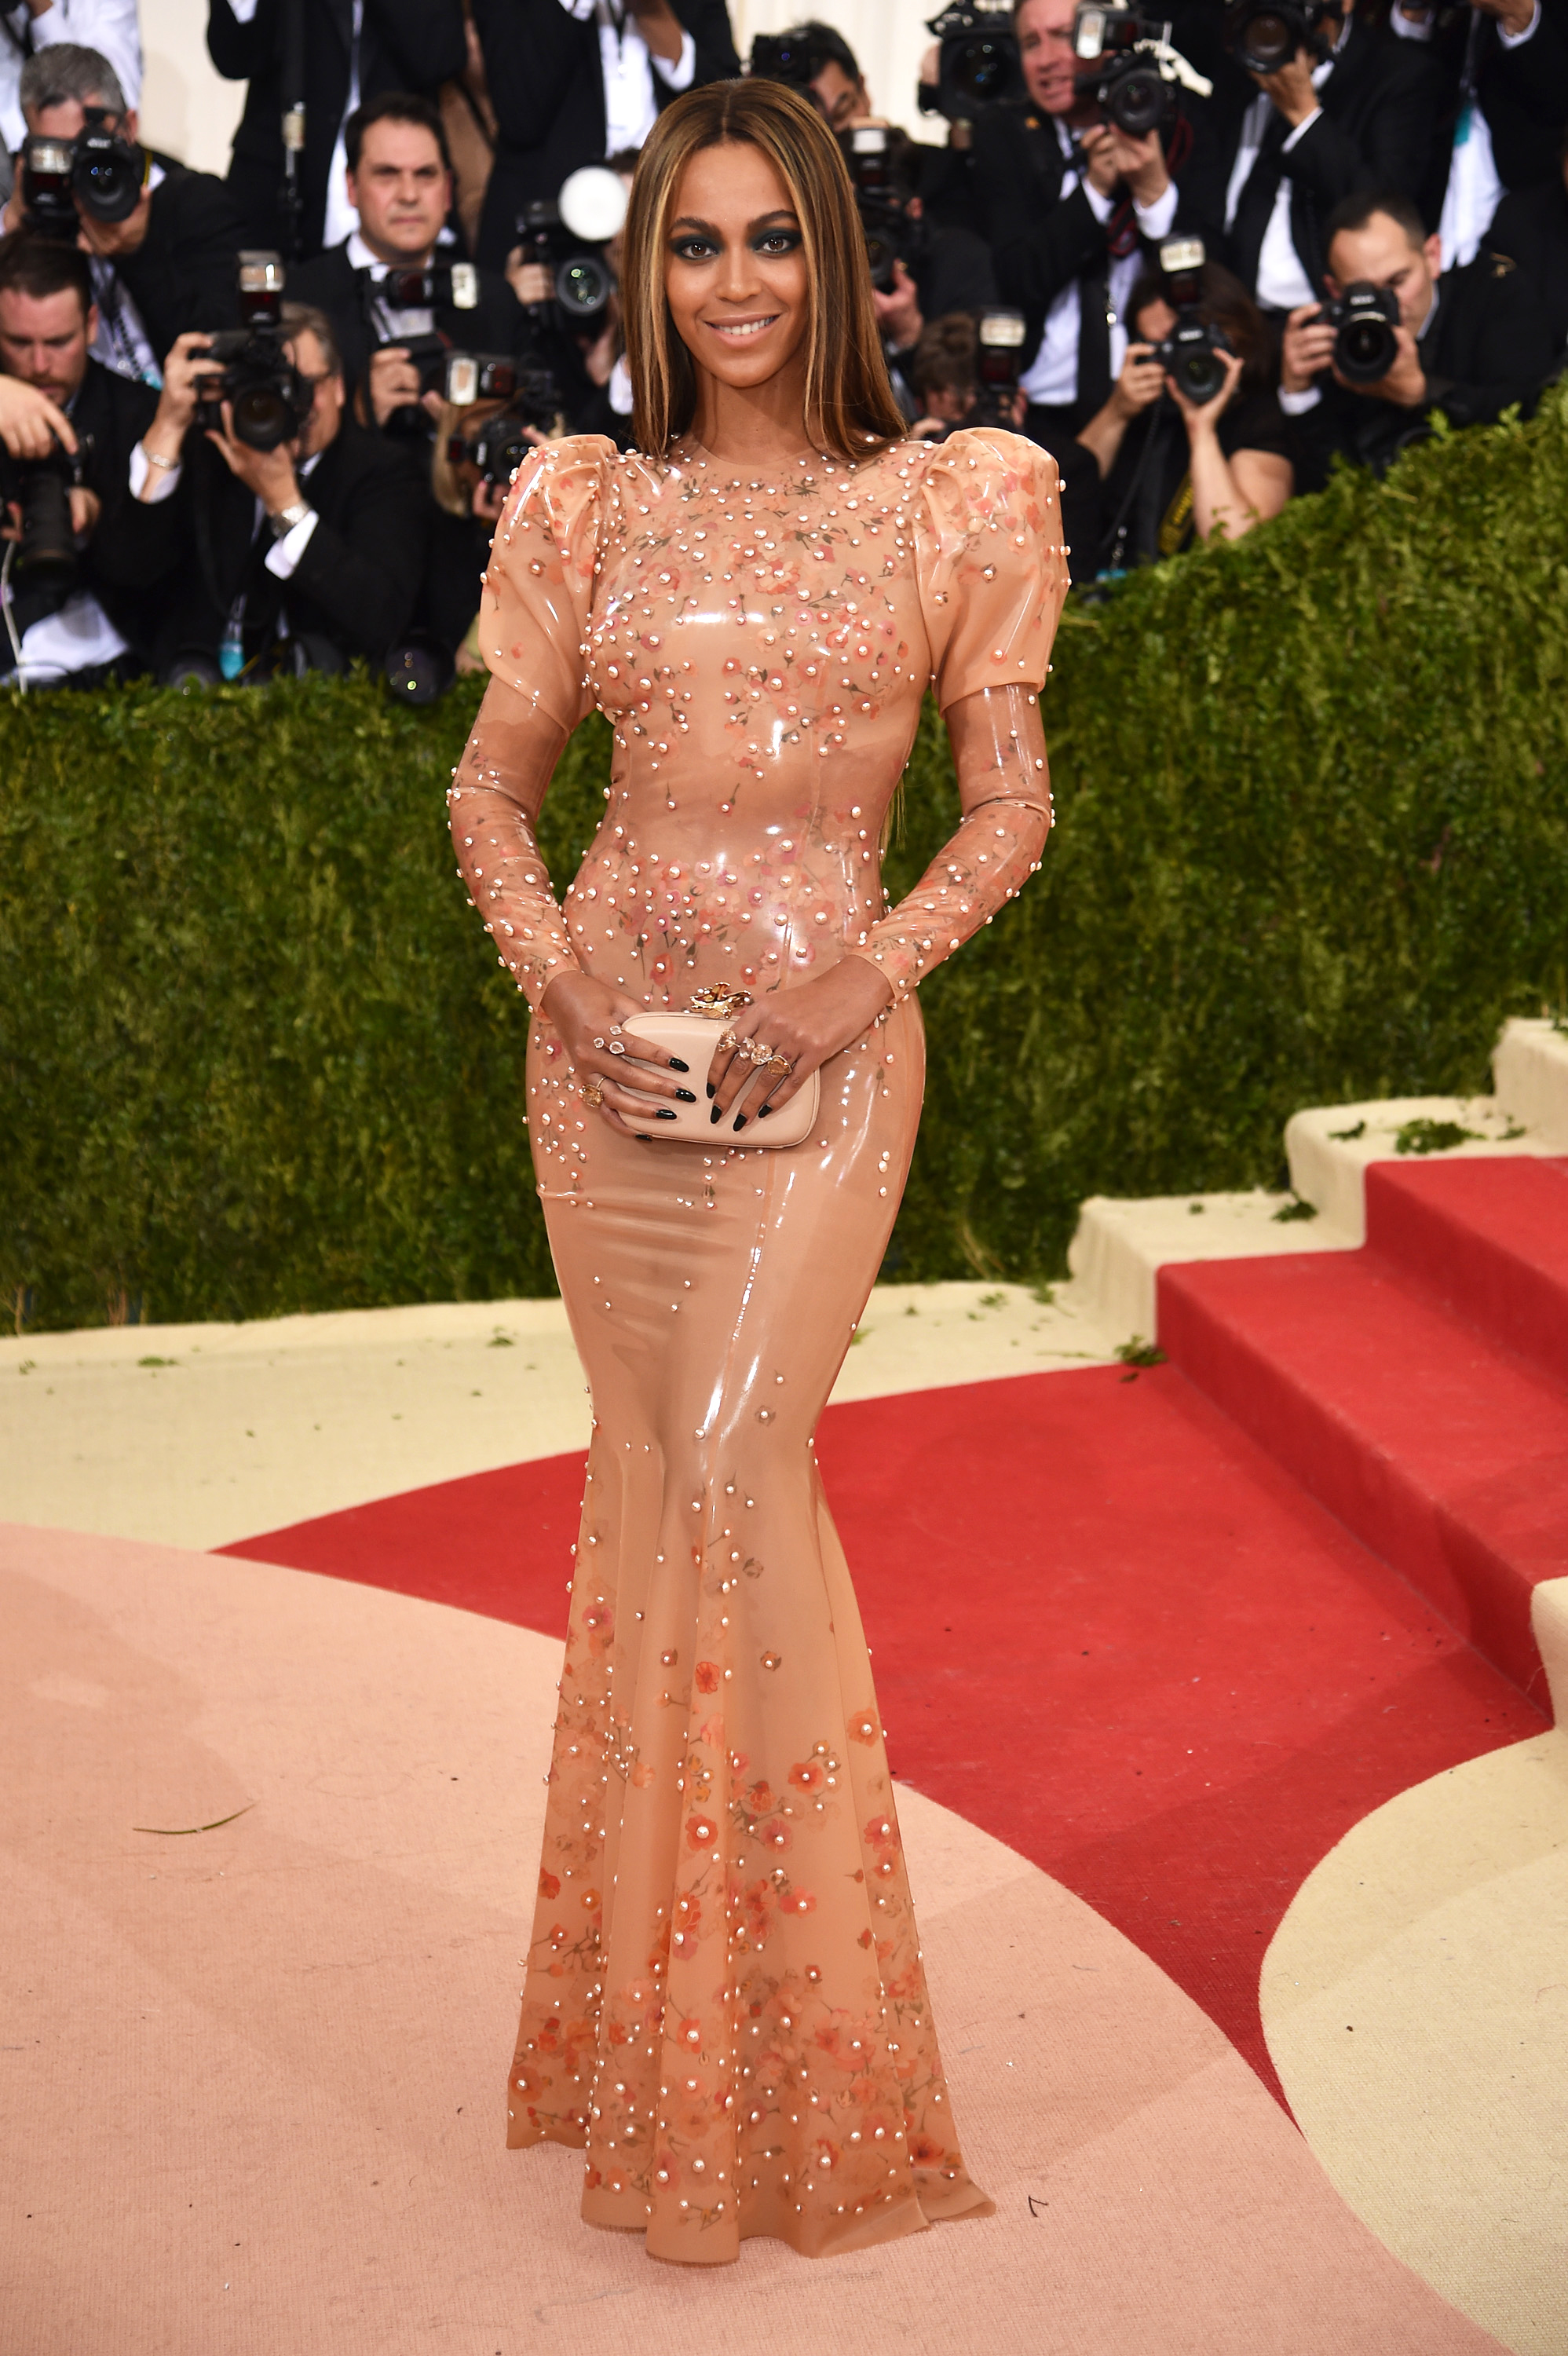 Beyoncé attends the  Manus x Machina: Fashion In An Age Of Technology  Costume Institute Gala at Metropolitan Museum of Art on May 2, 2016 in New York City.